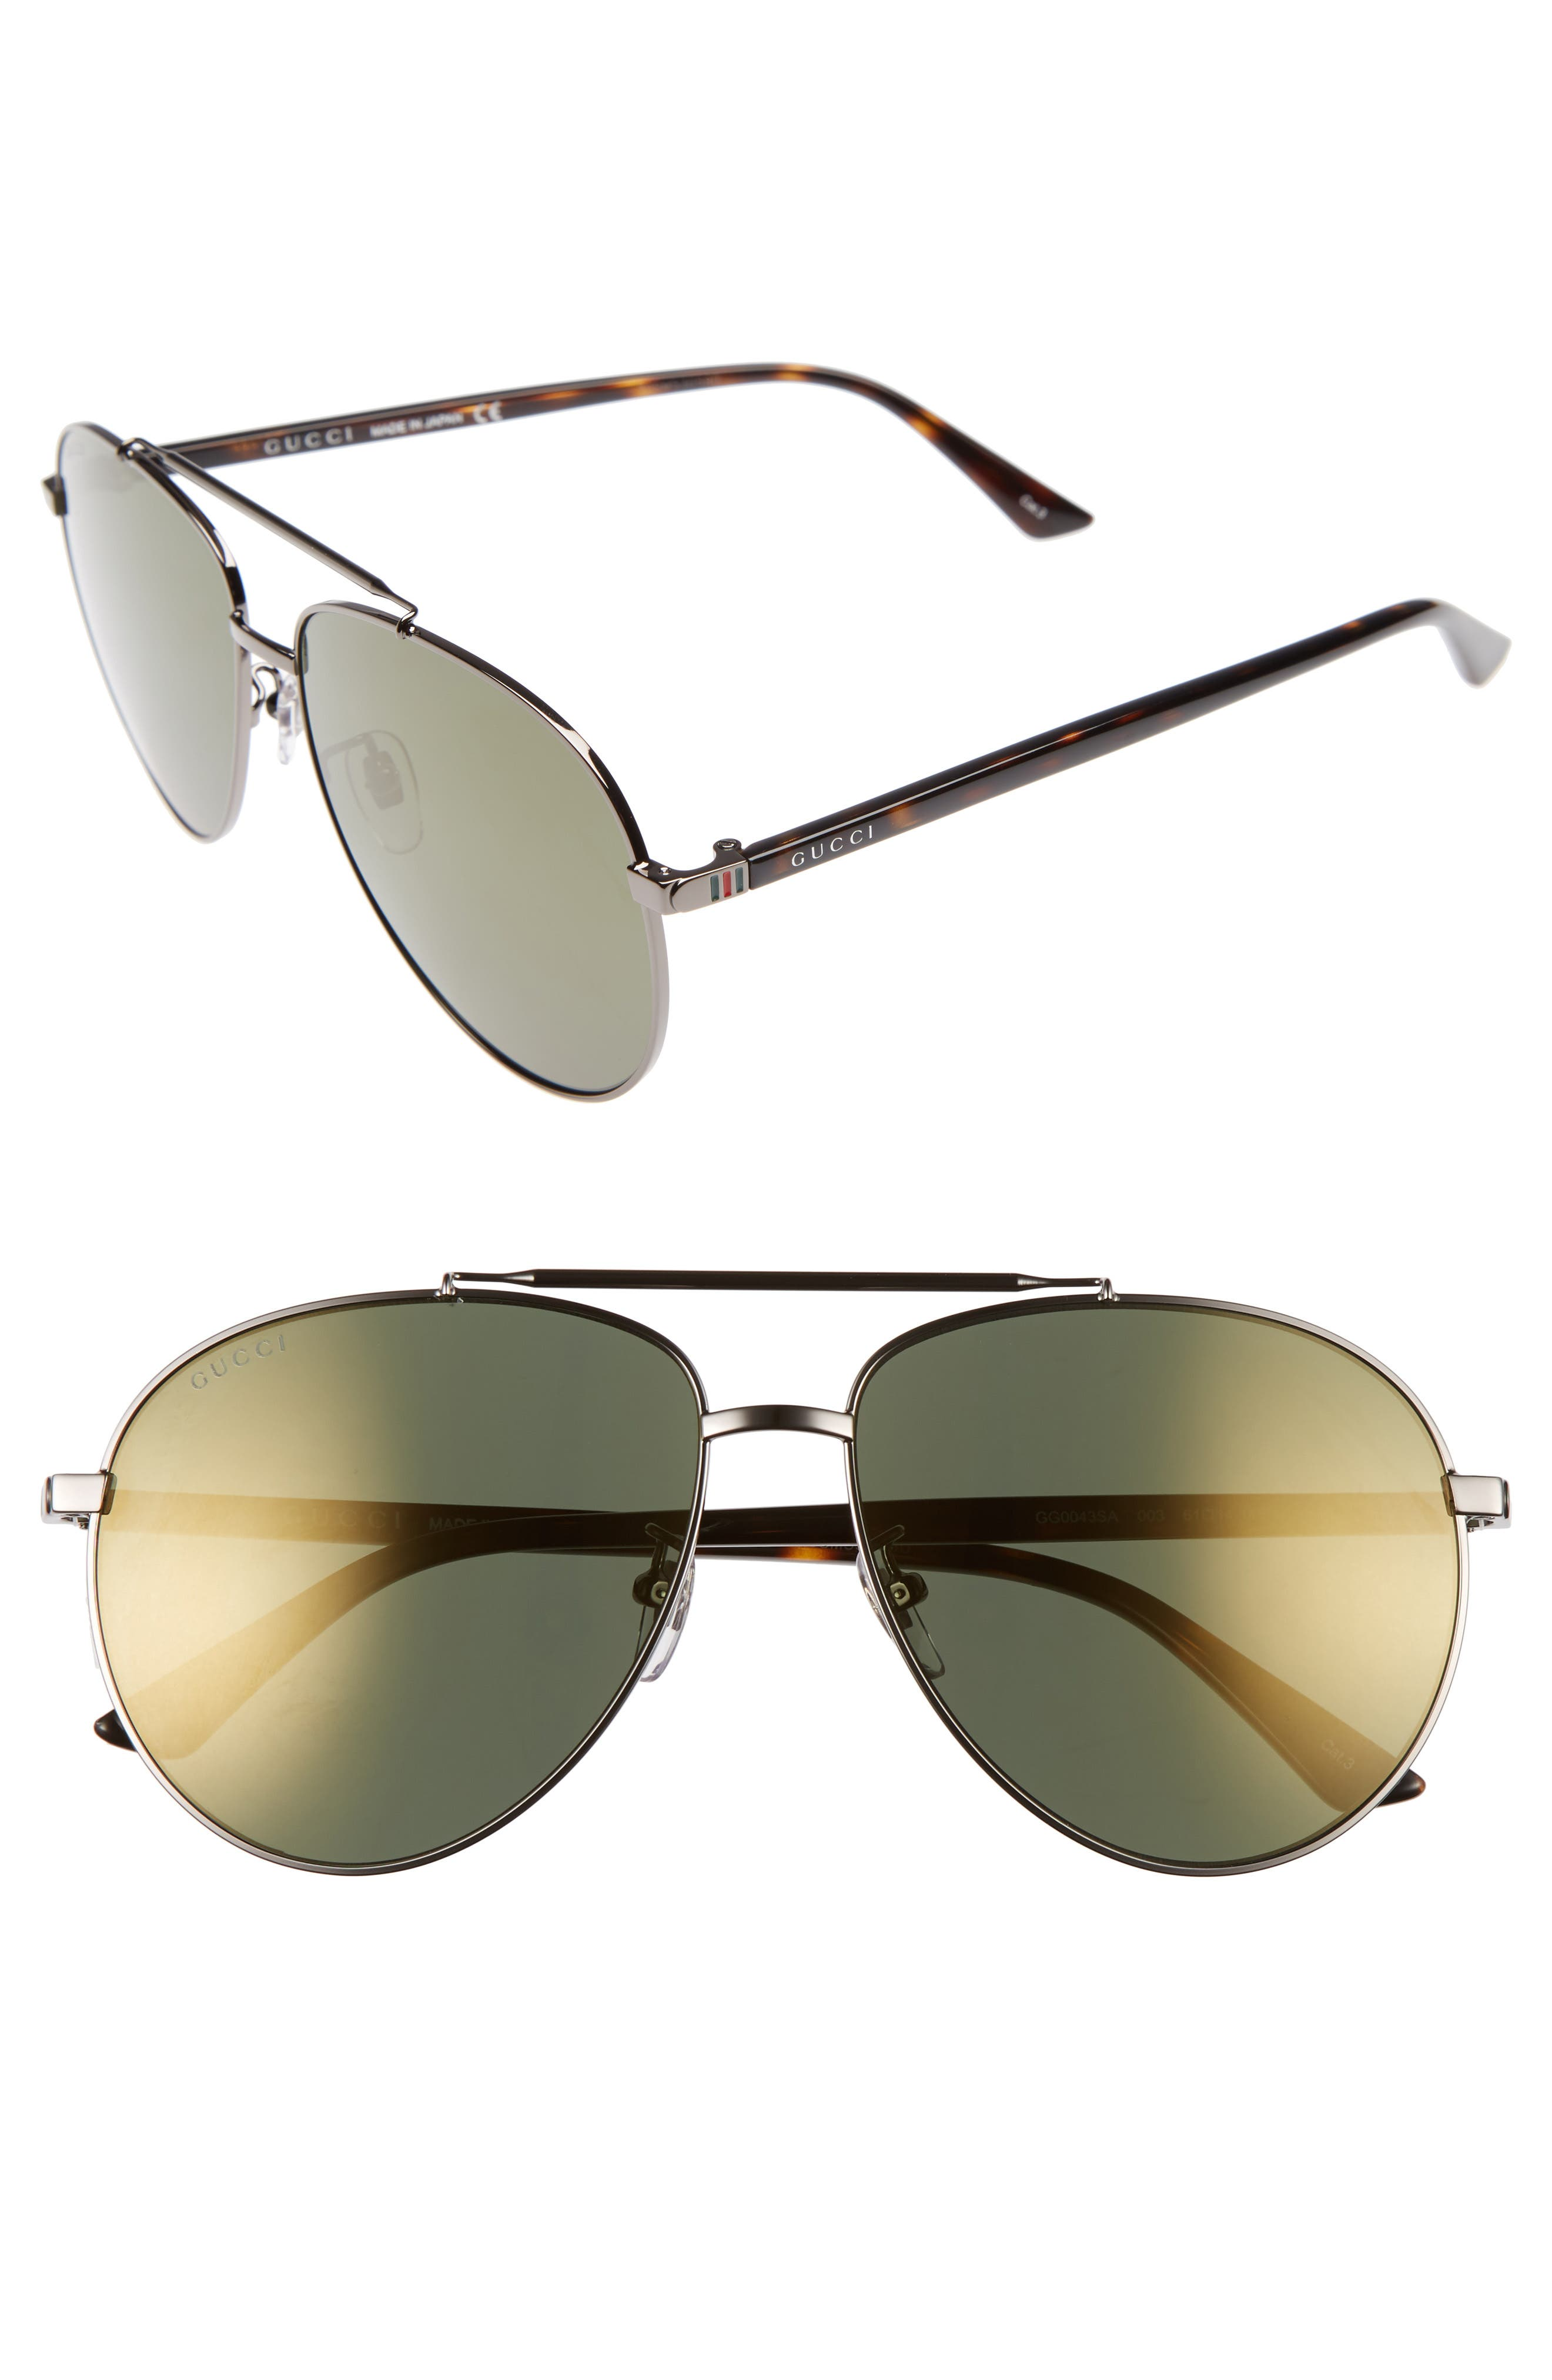 Retro Web 61mm Aviator Sunglasses,                             Main thumbnail 1, color,                             RUTHENIUM W.MIRROR GUN LENS